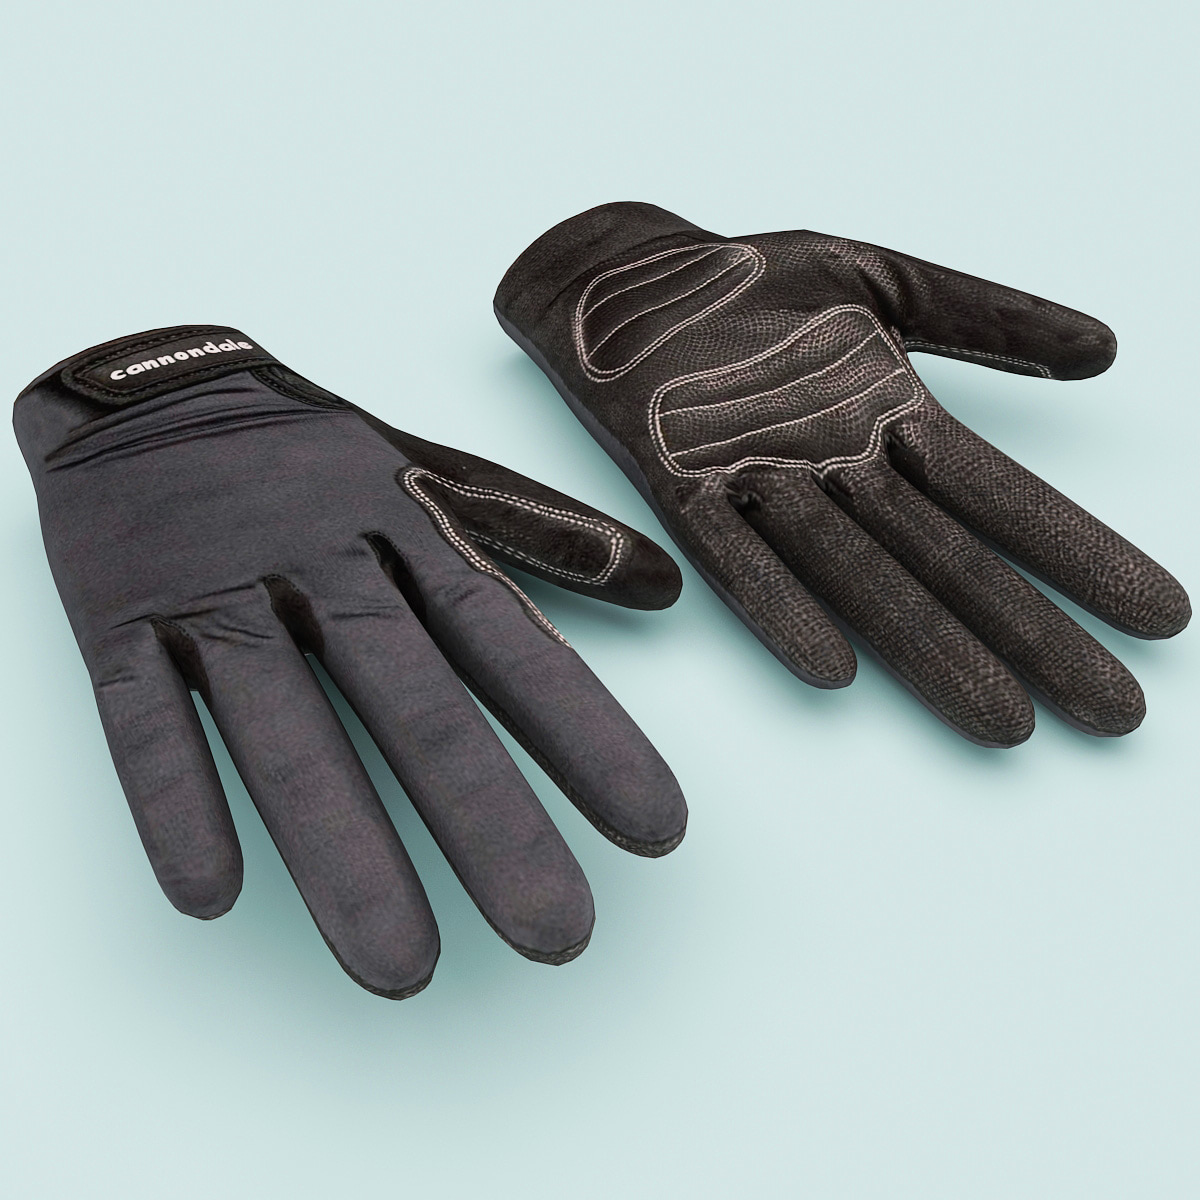 Cannondale_Gloves_001.jpg